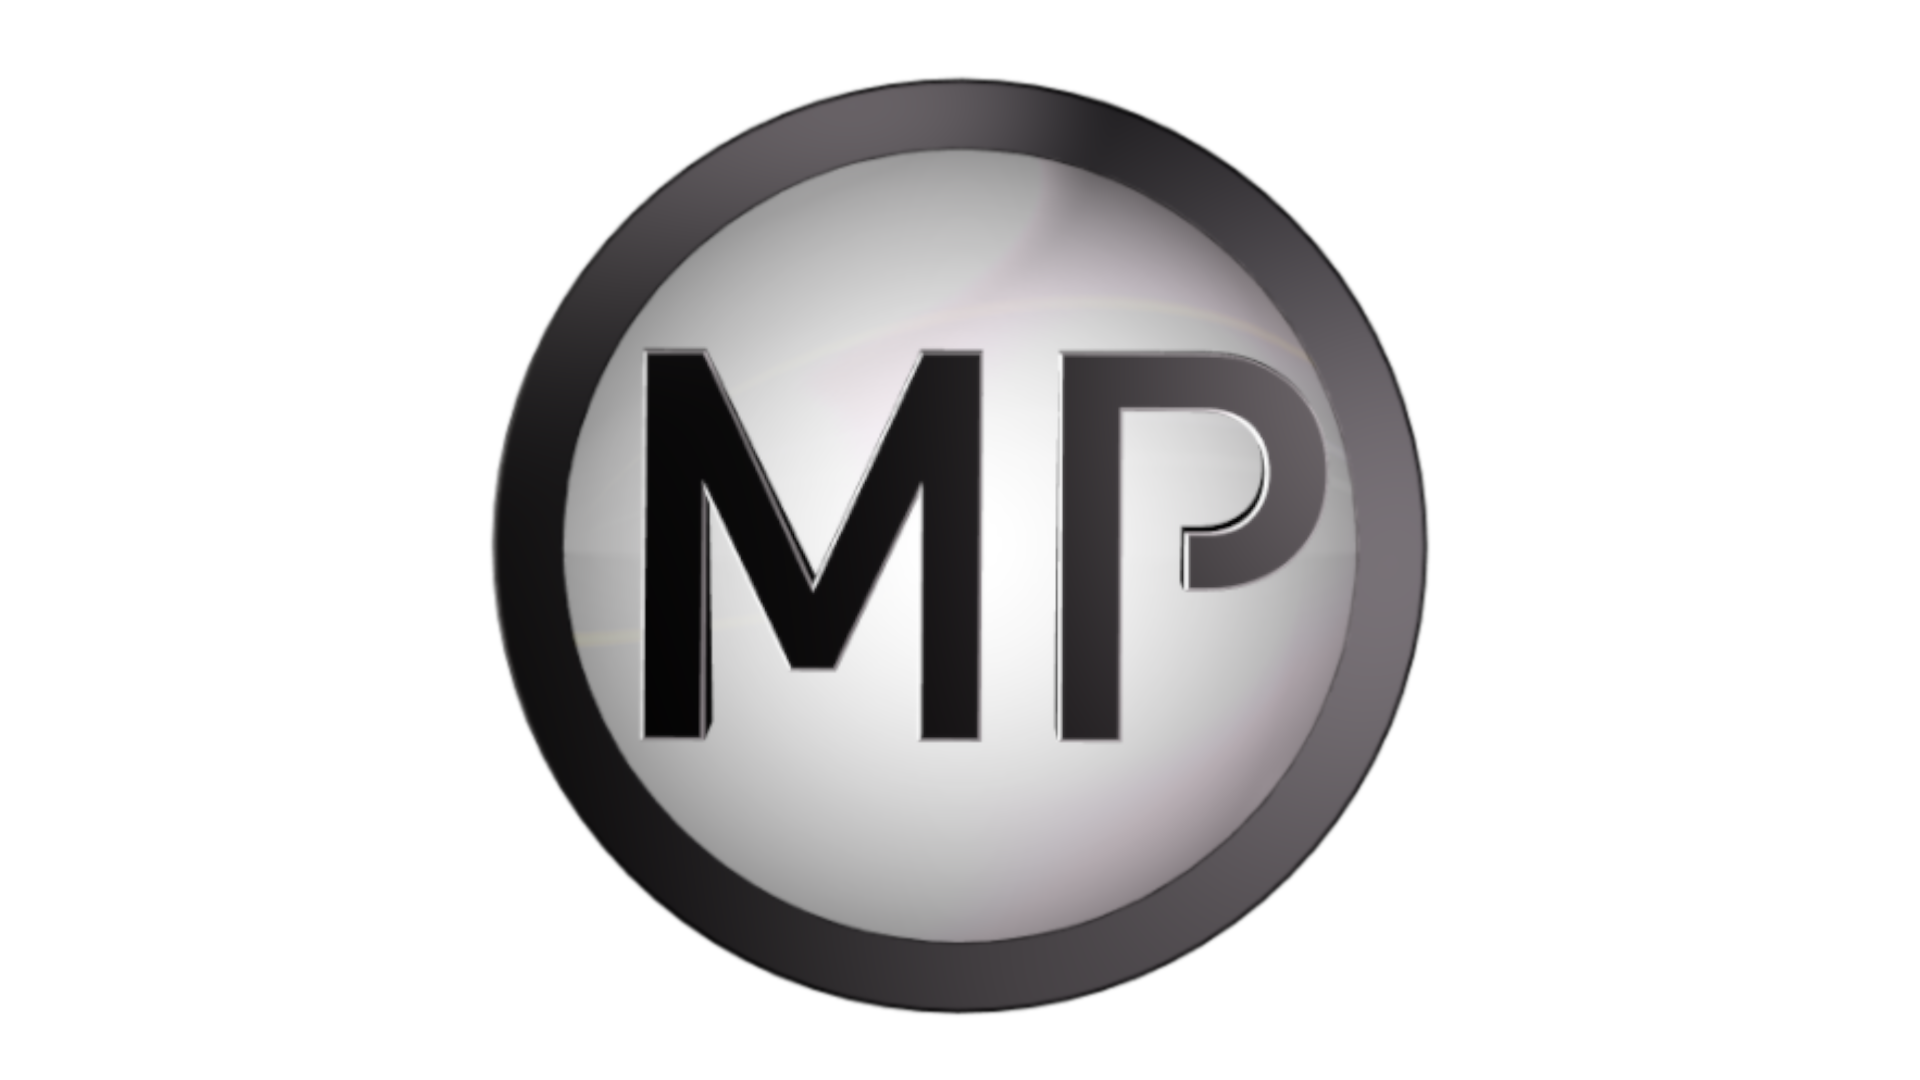 Mp logo design download free clipart with a transparent.